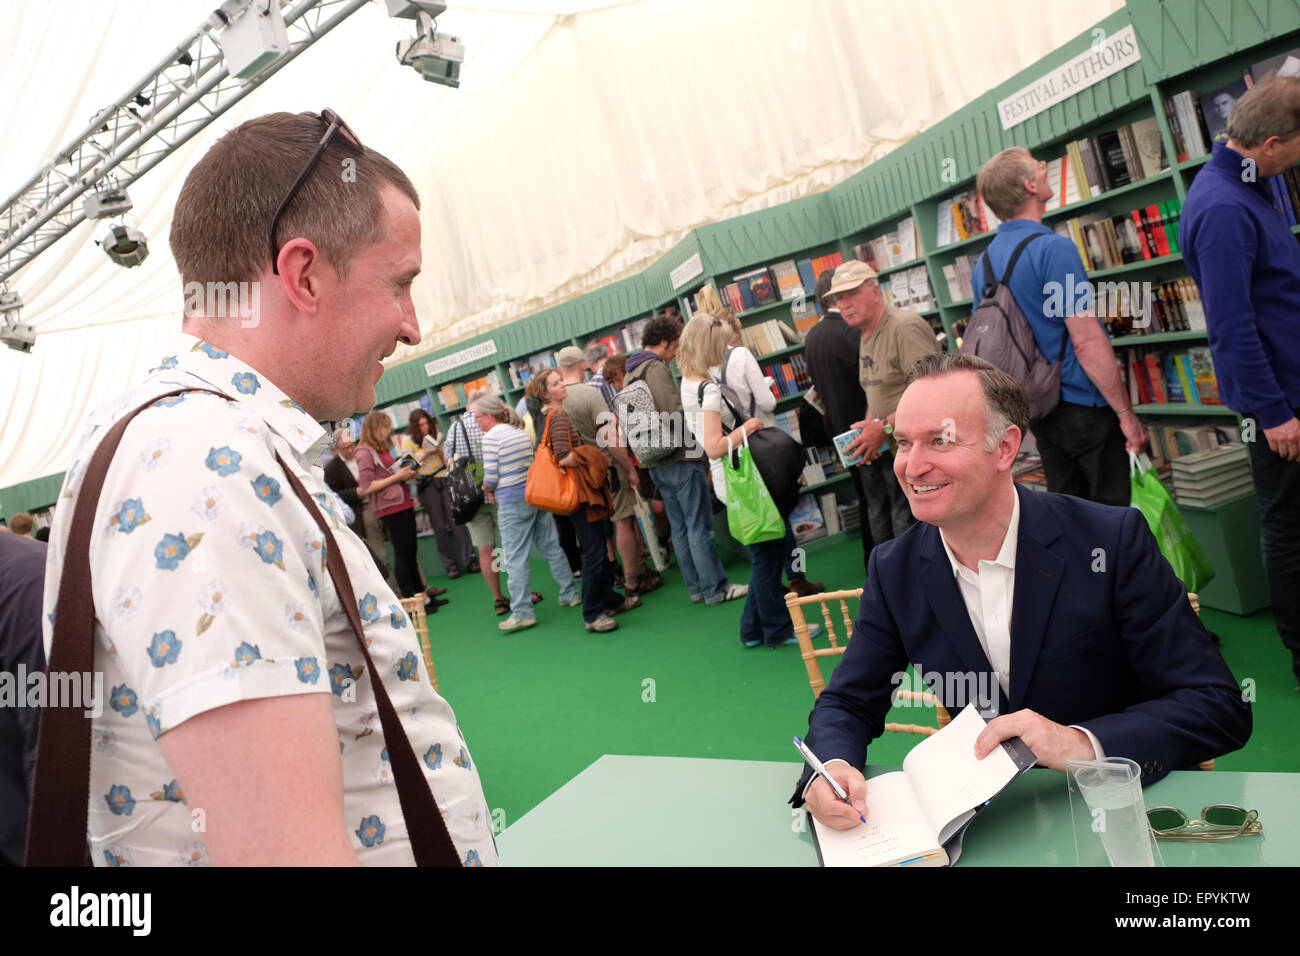 Hay Festival, Powys, Wales - May 2015 - Author Andrew O'Hagan at the Hay Festival signing copies of his latest book Stock Photo